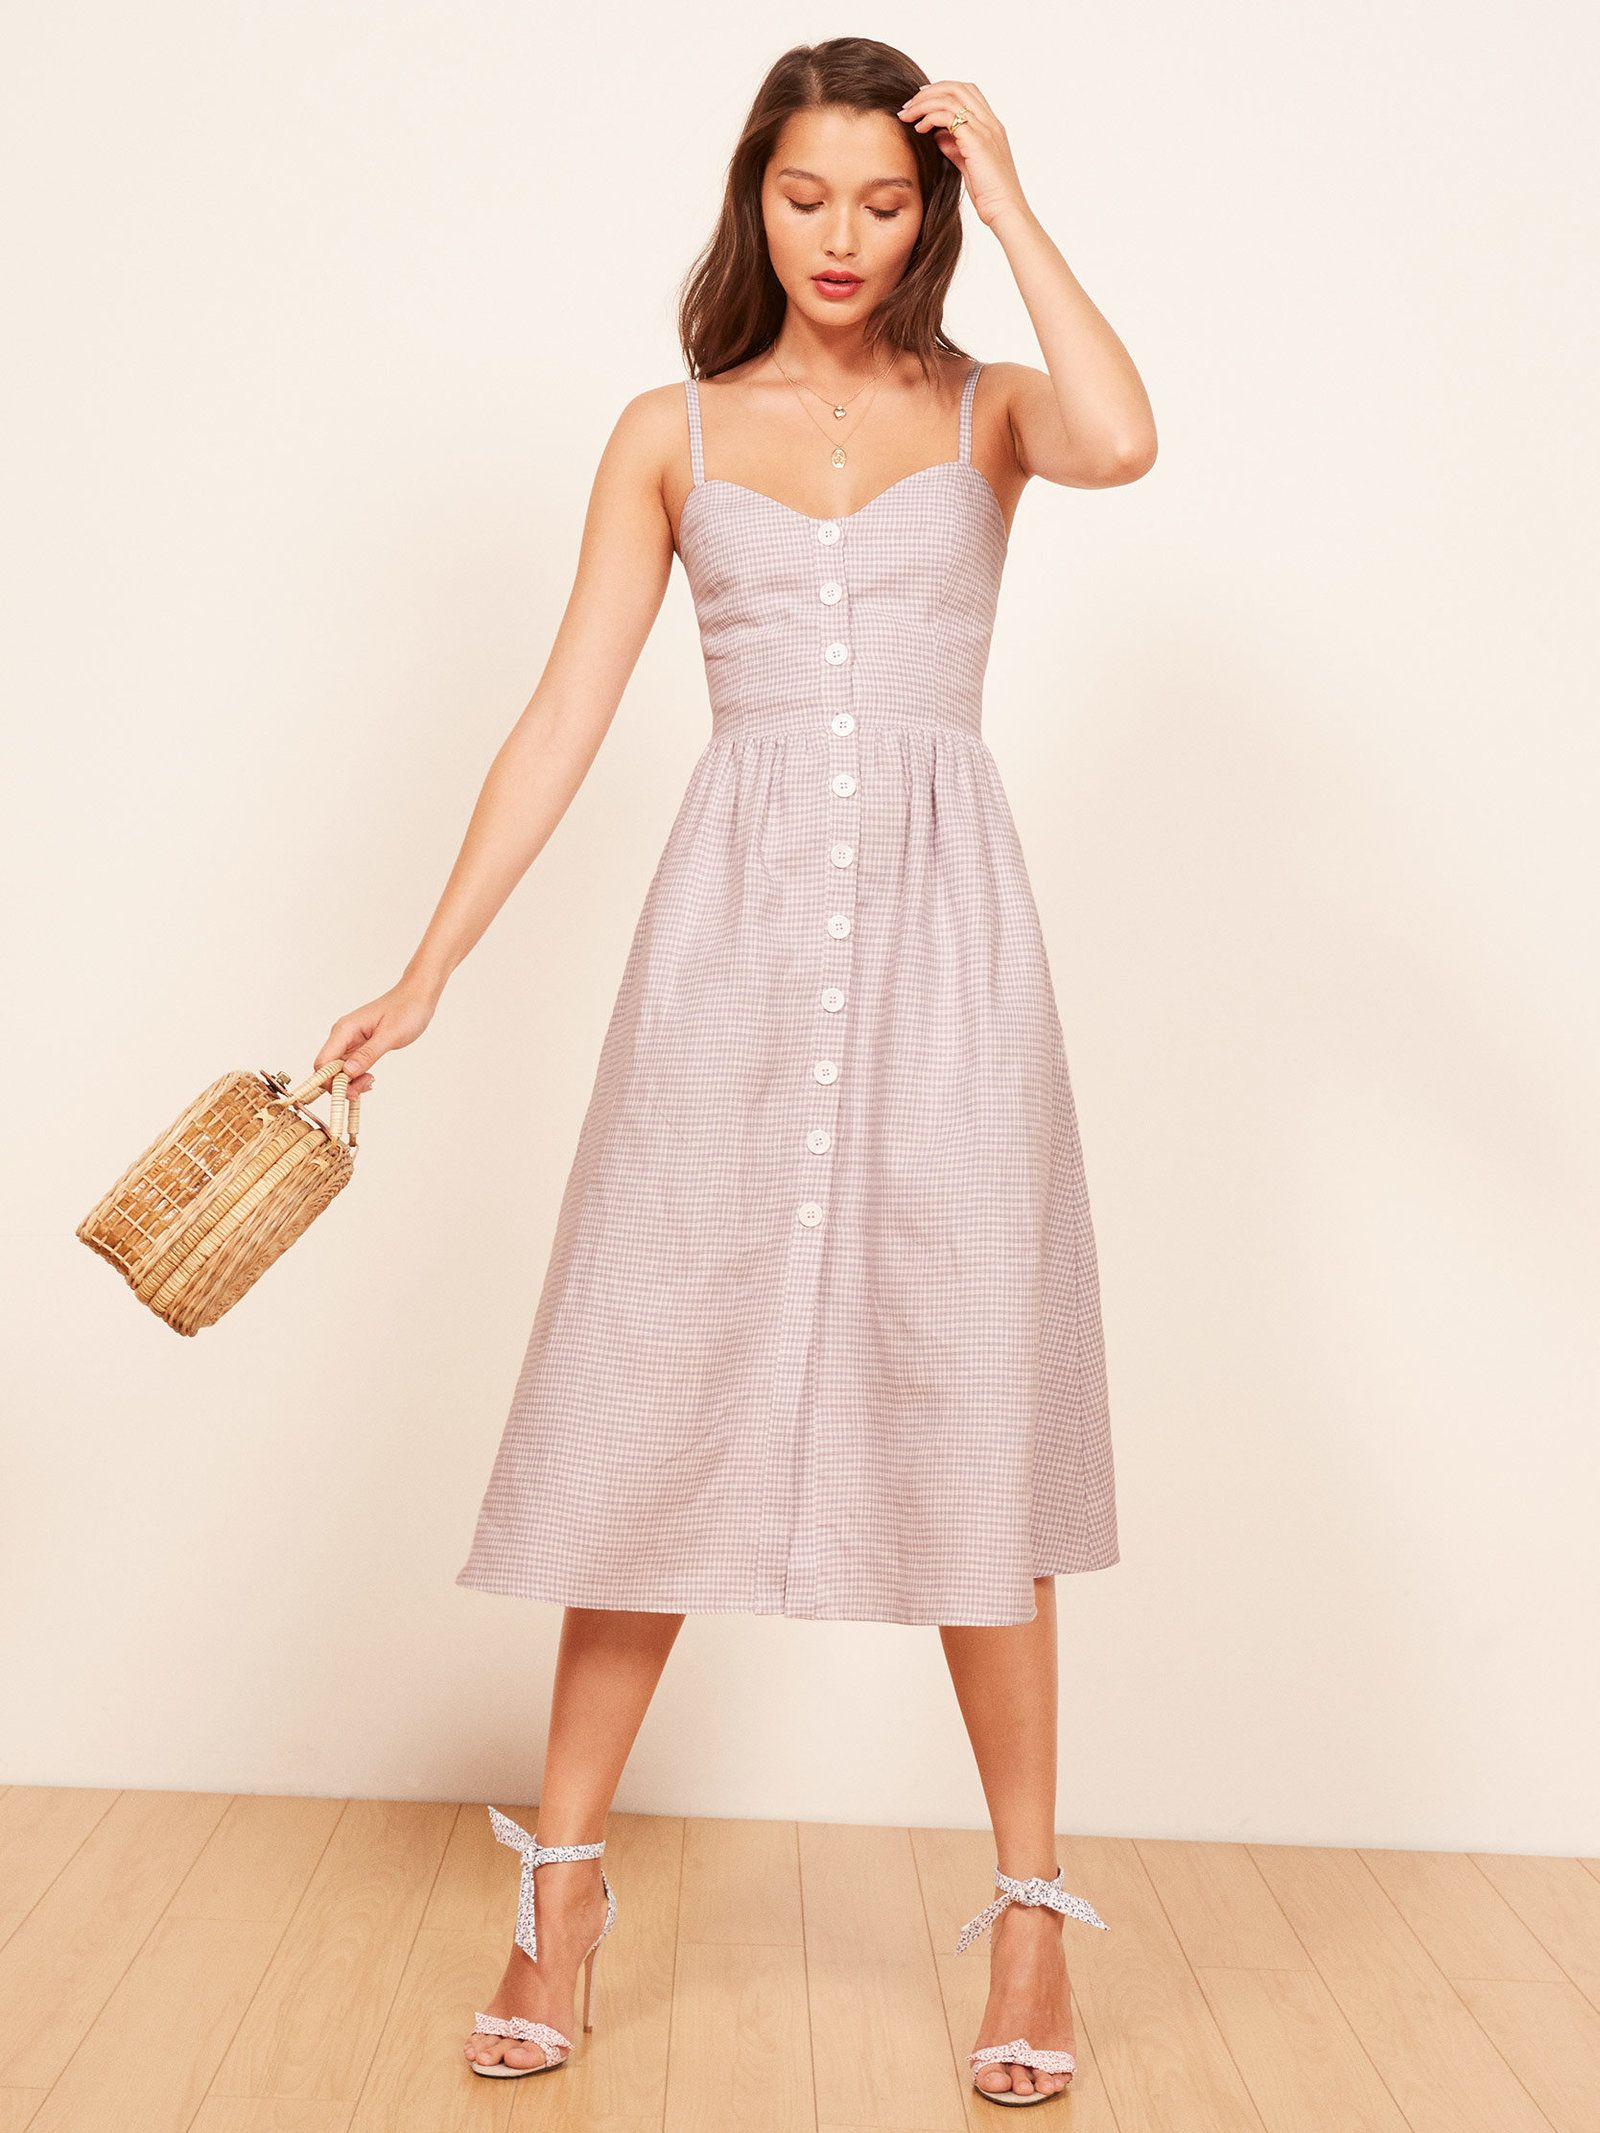 6315e0b54a4 Reformation Thelma Dress in color